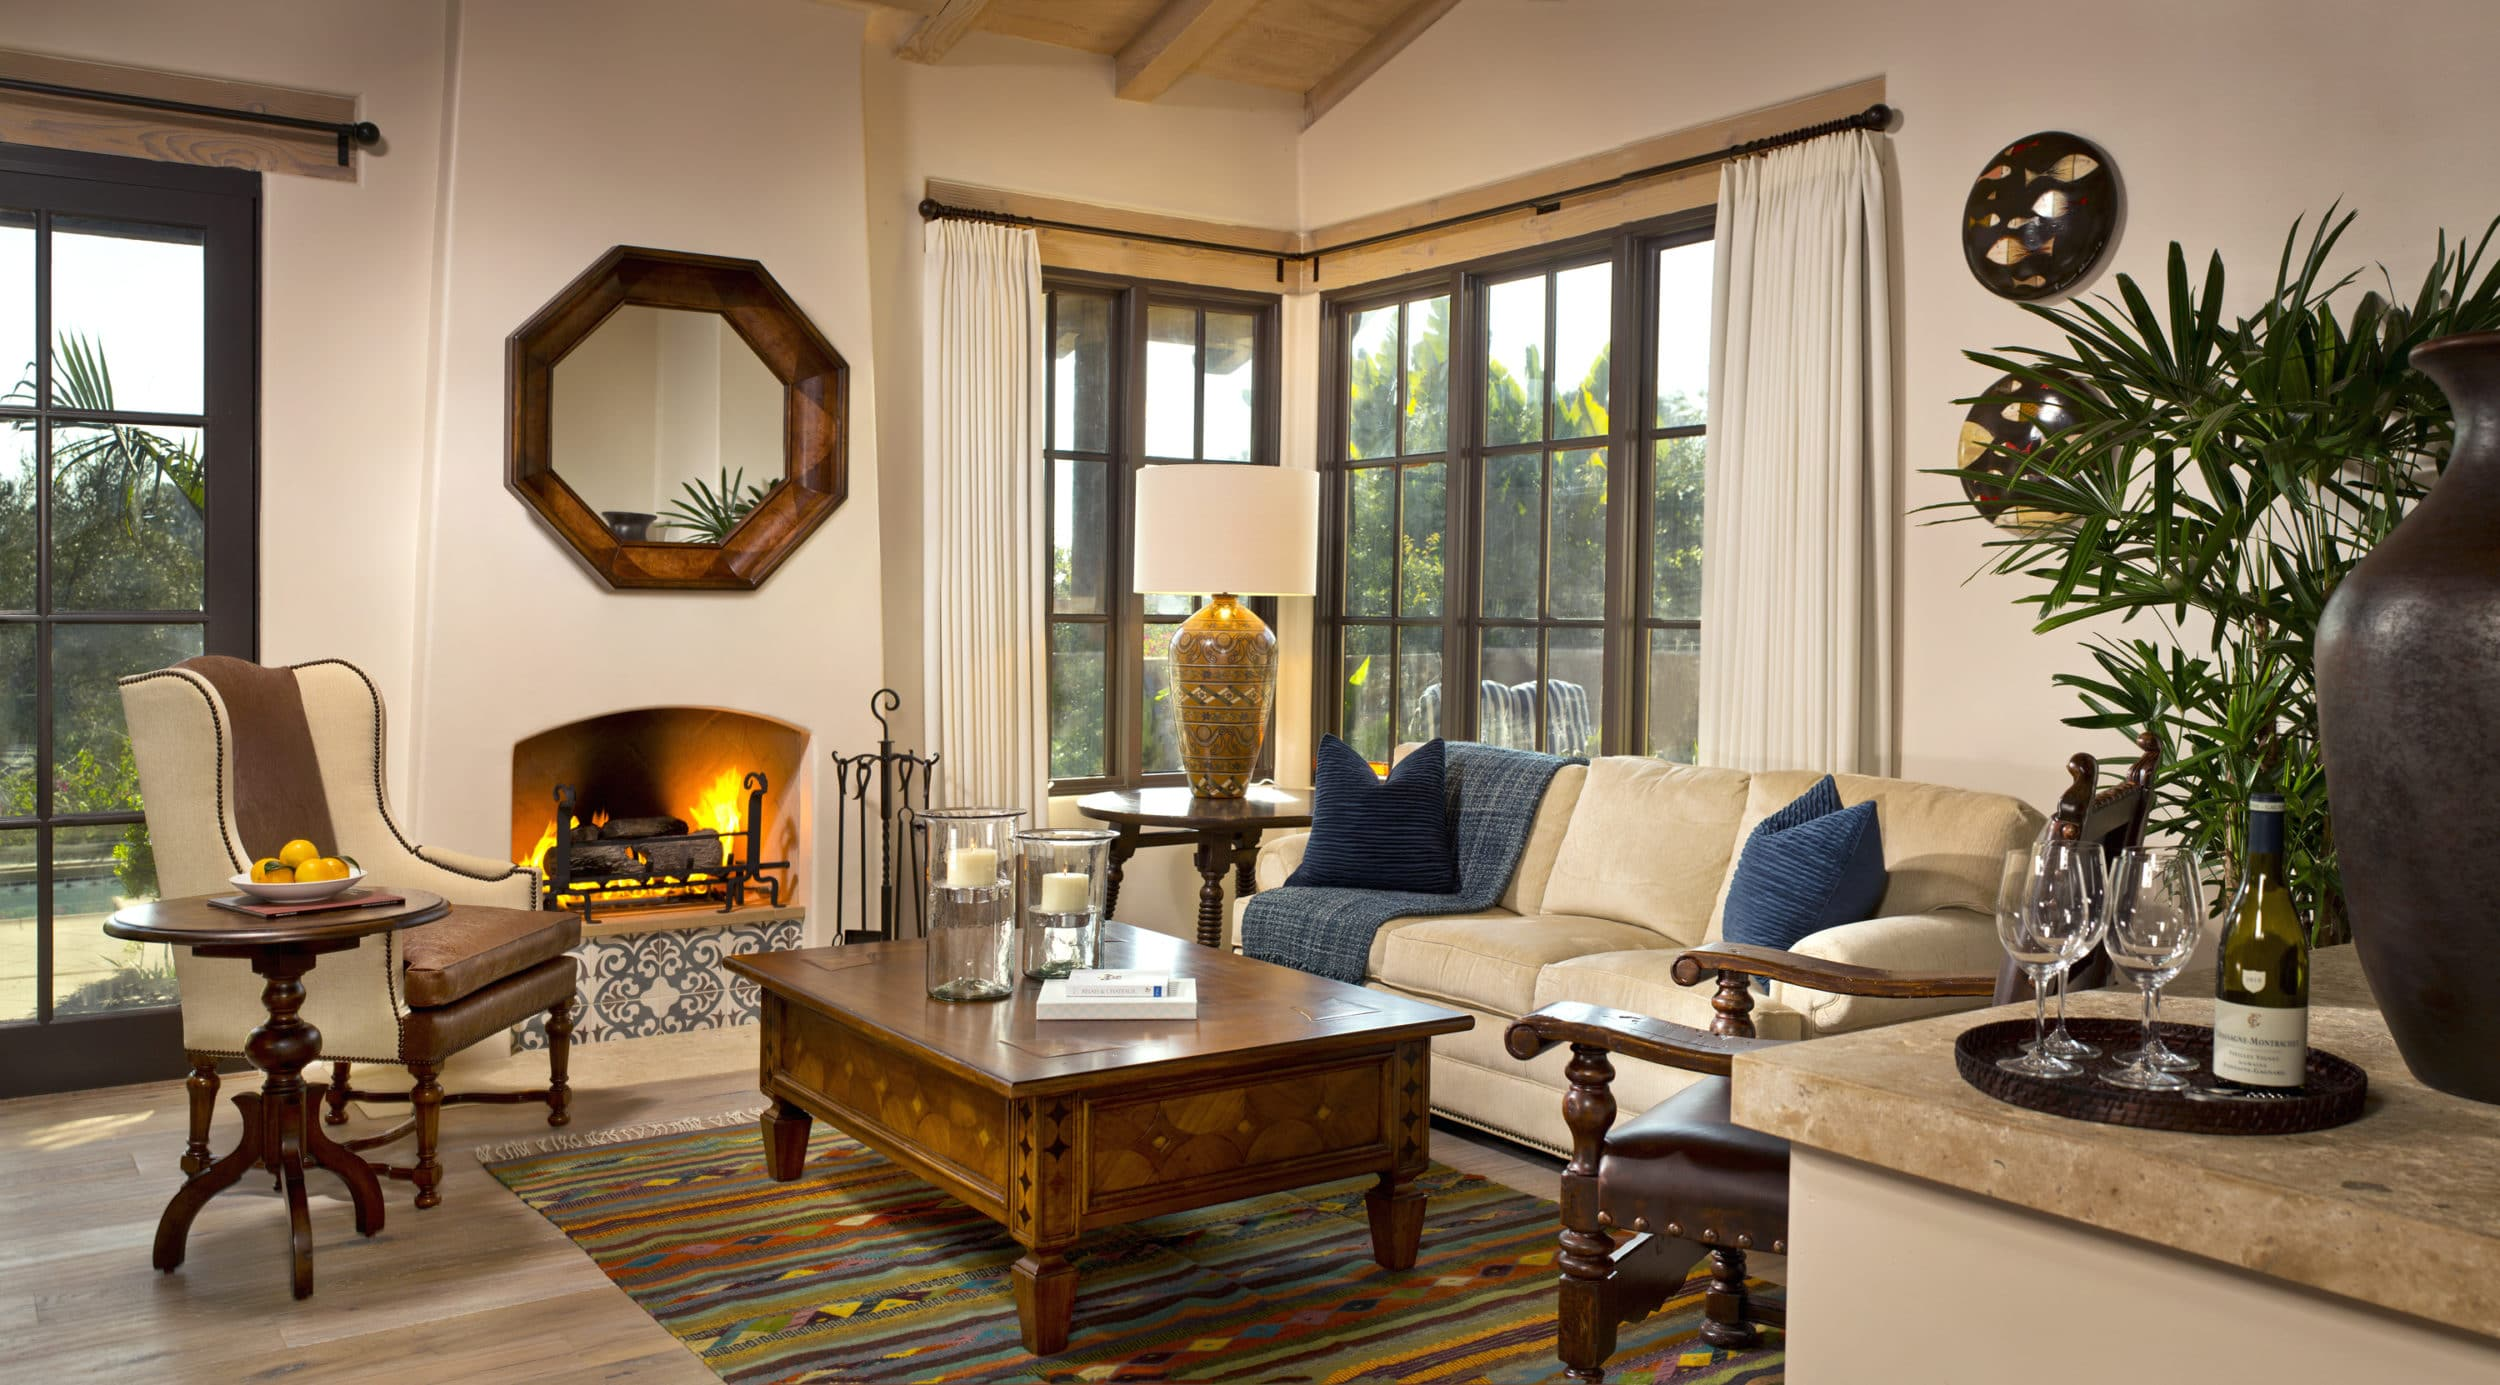 Valencia Suite at Rancho Valencia, a San Diego luxury hotel